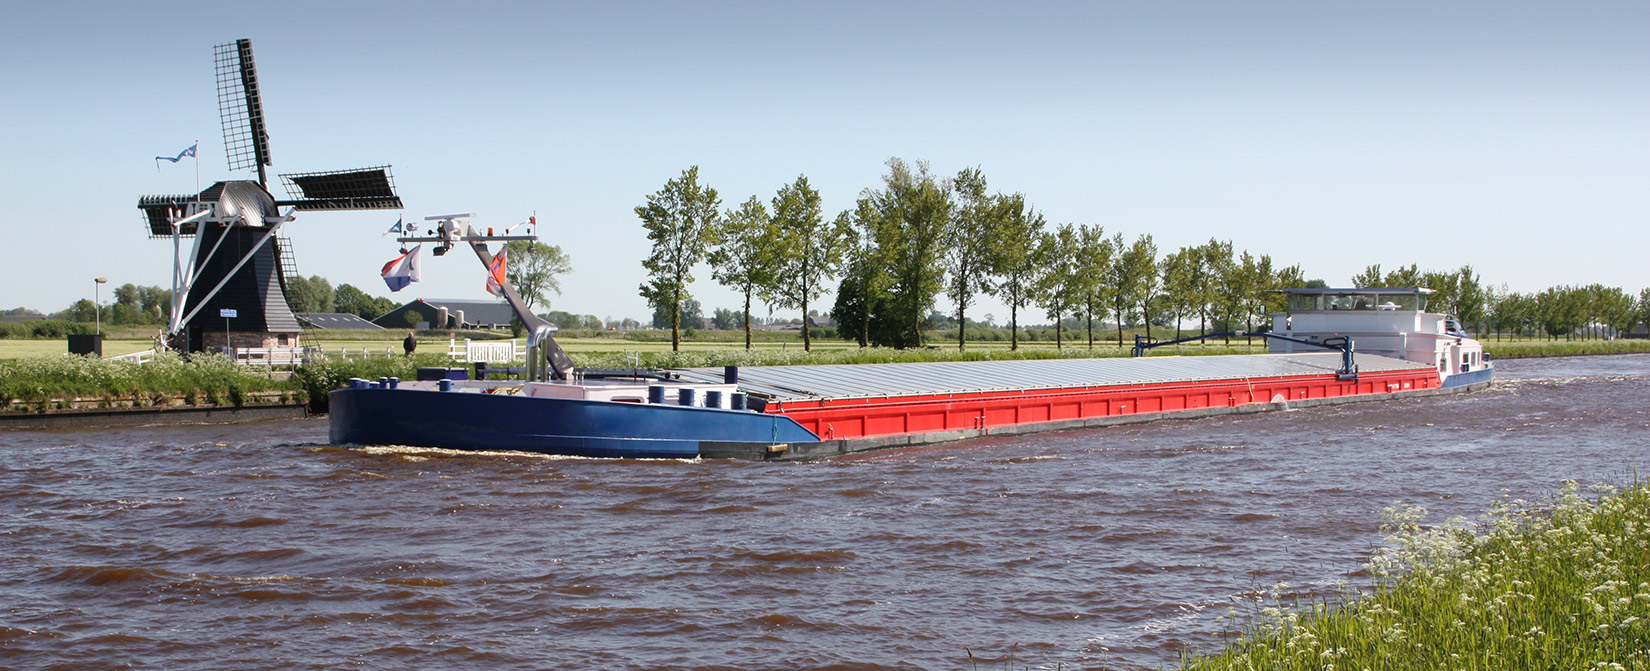 Subsidy granted for construction of first hydrogen-powered cargo ship